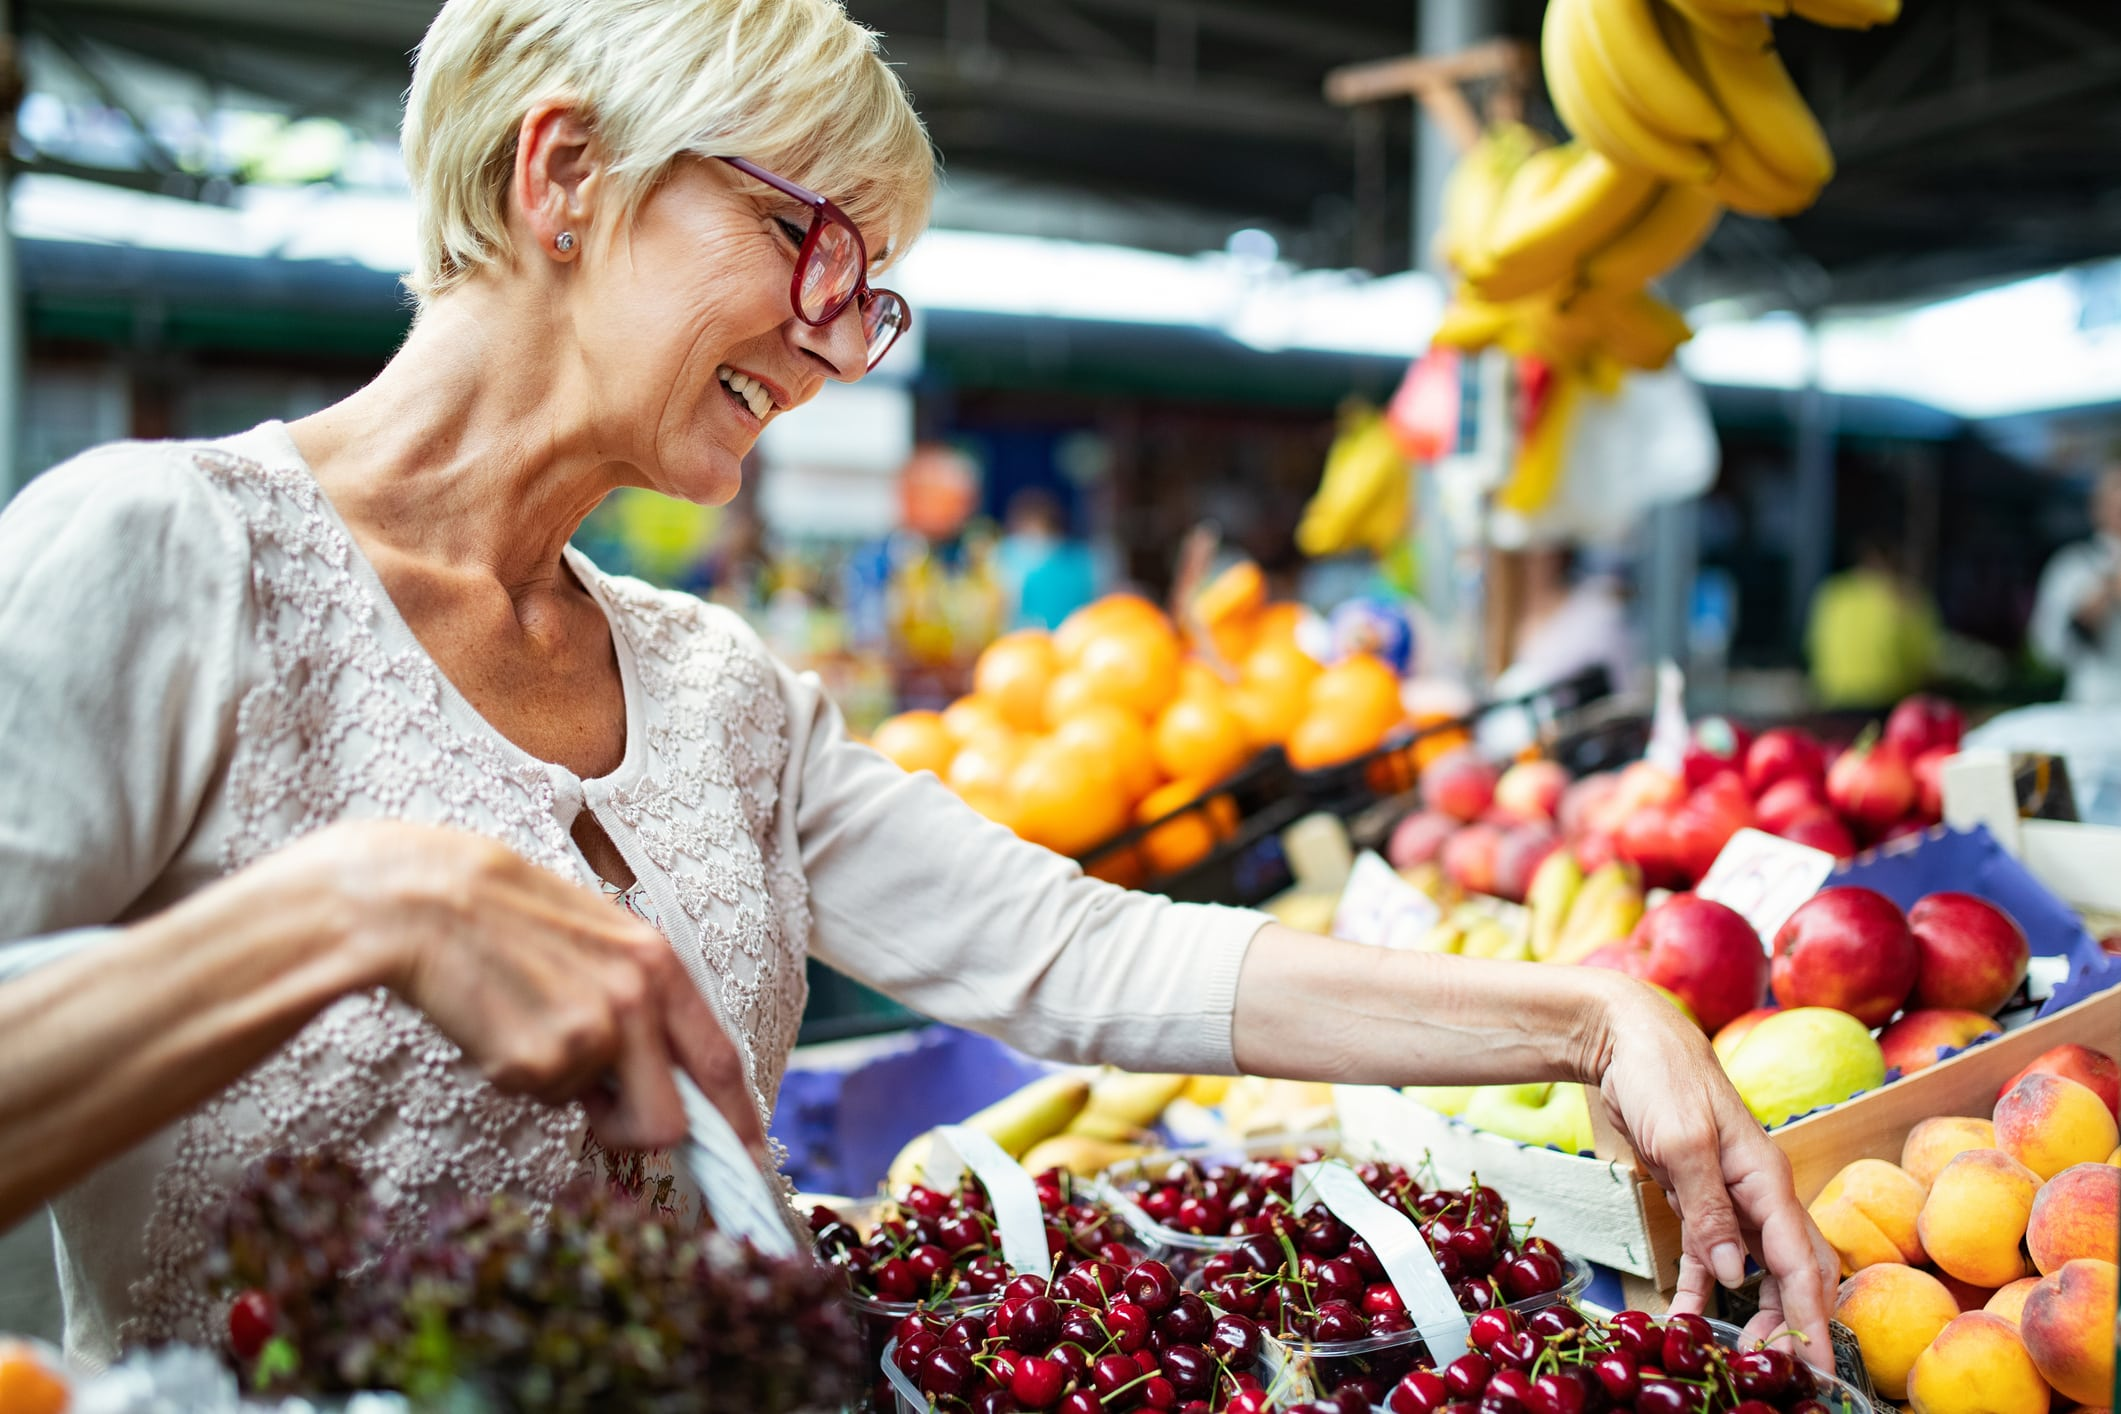 How to Save Money on Groceries: Shopping on a Budget